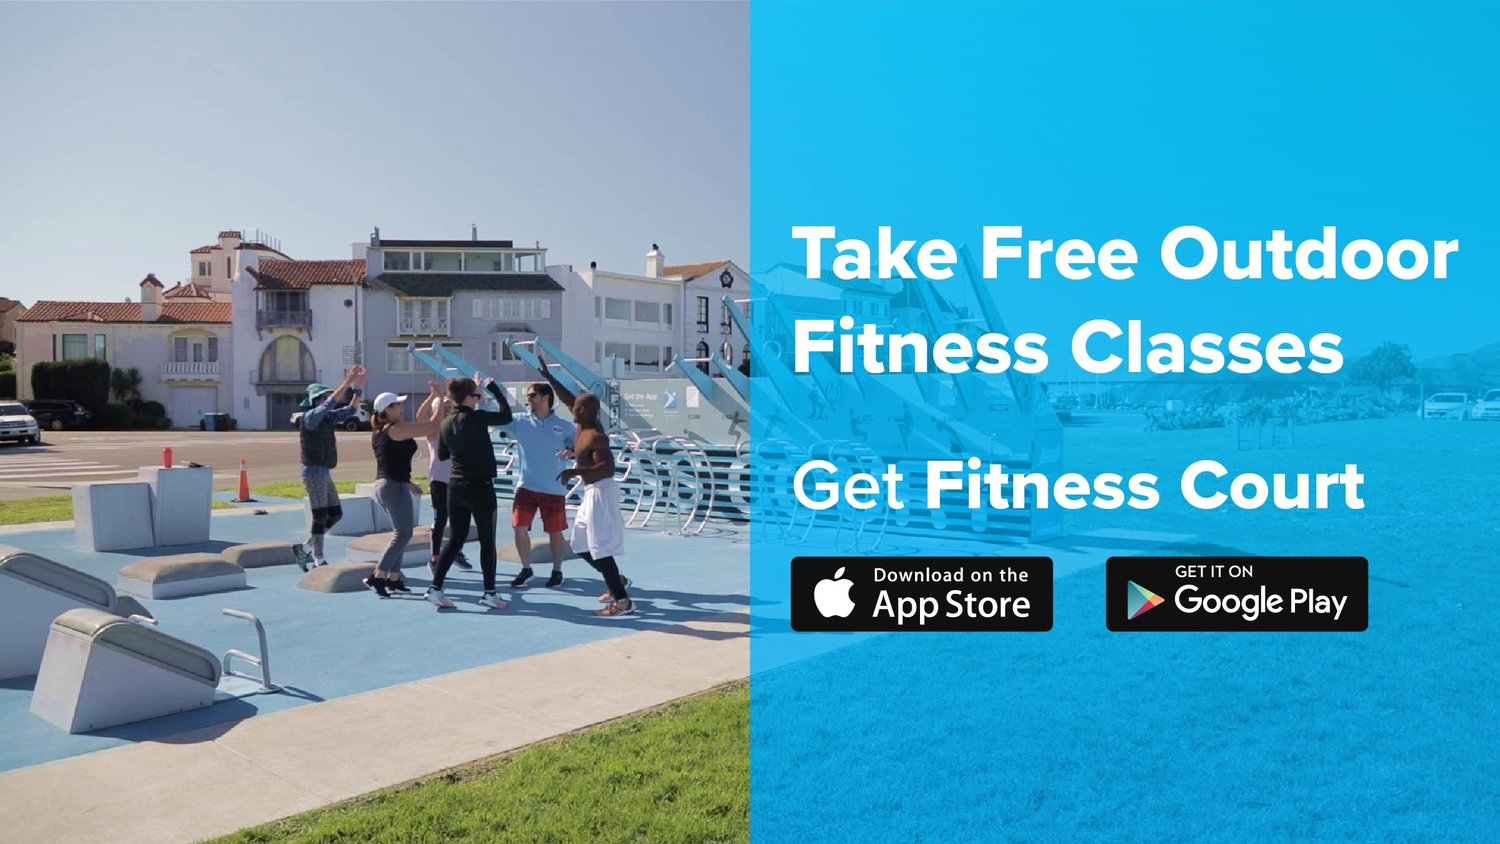 National Fitness Campaign | Fitness Court App 1